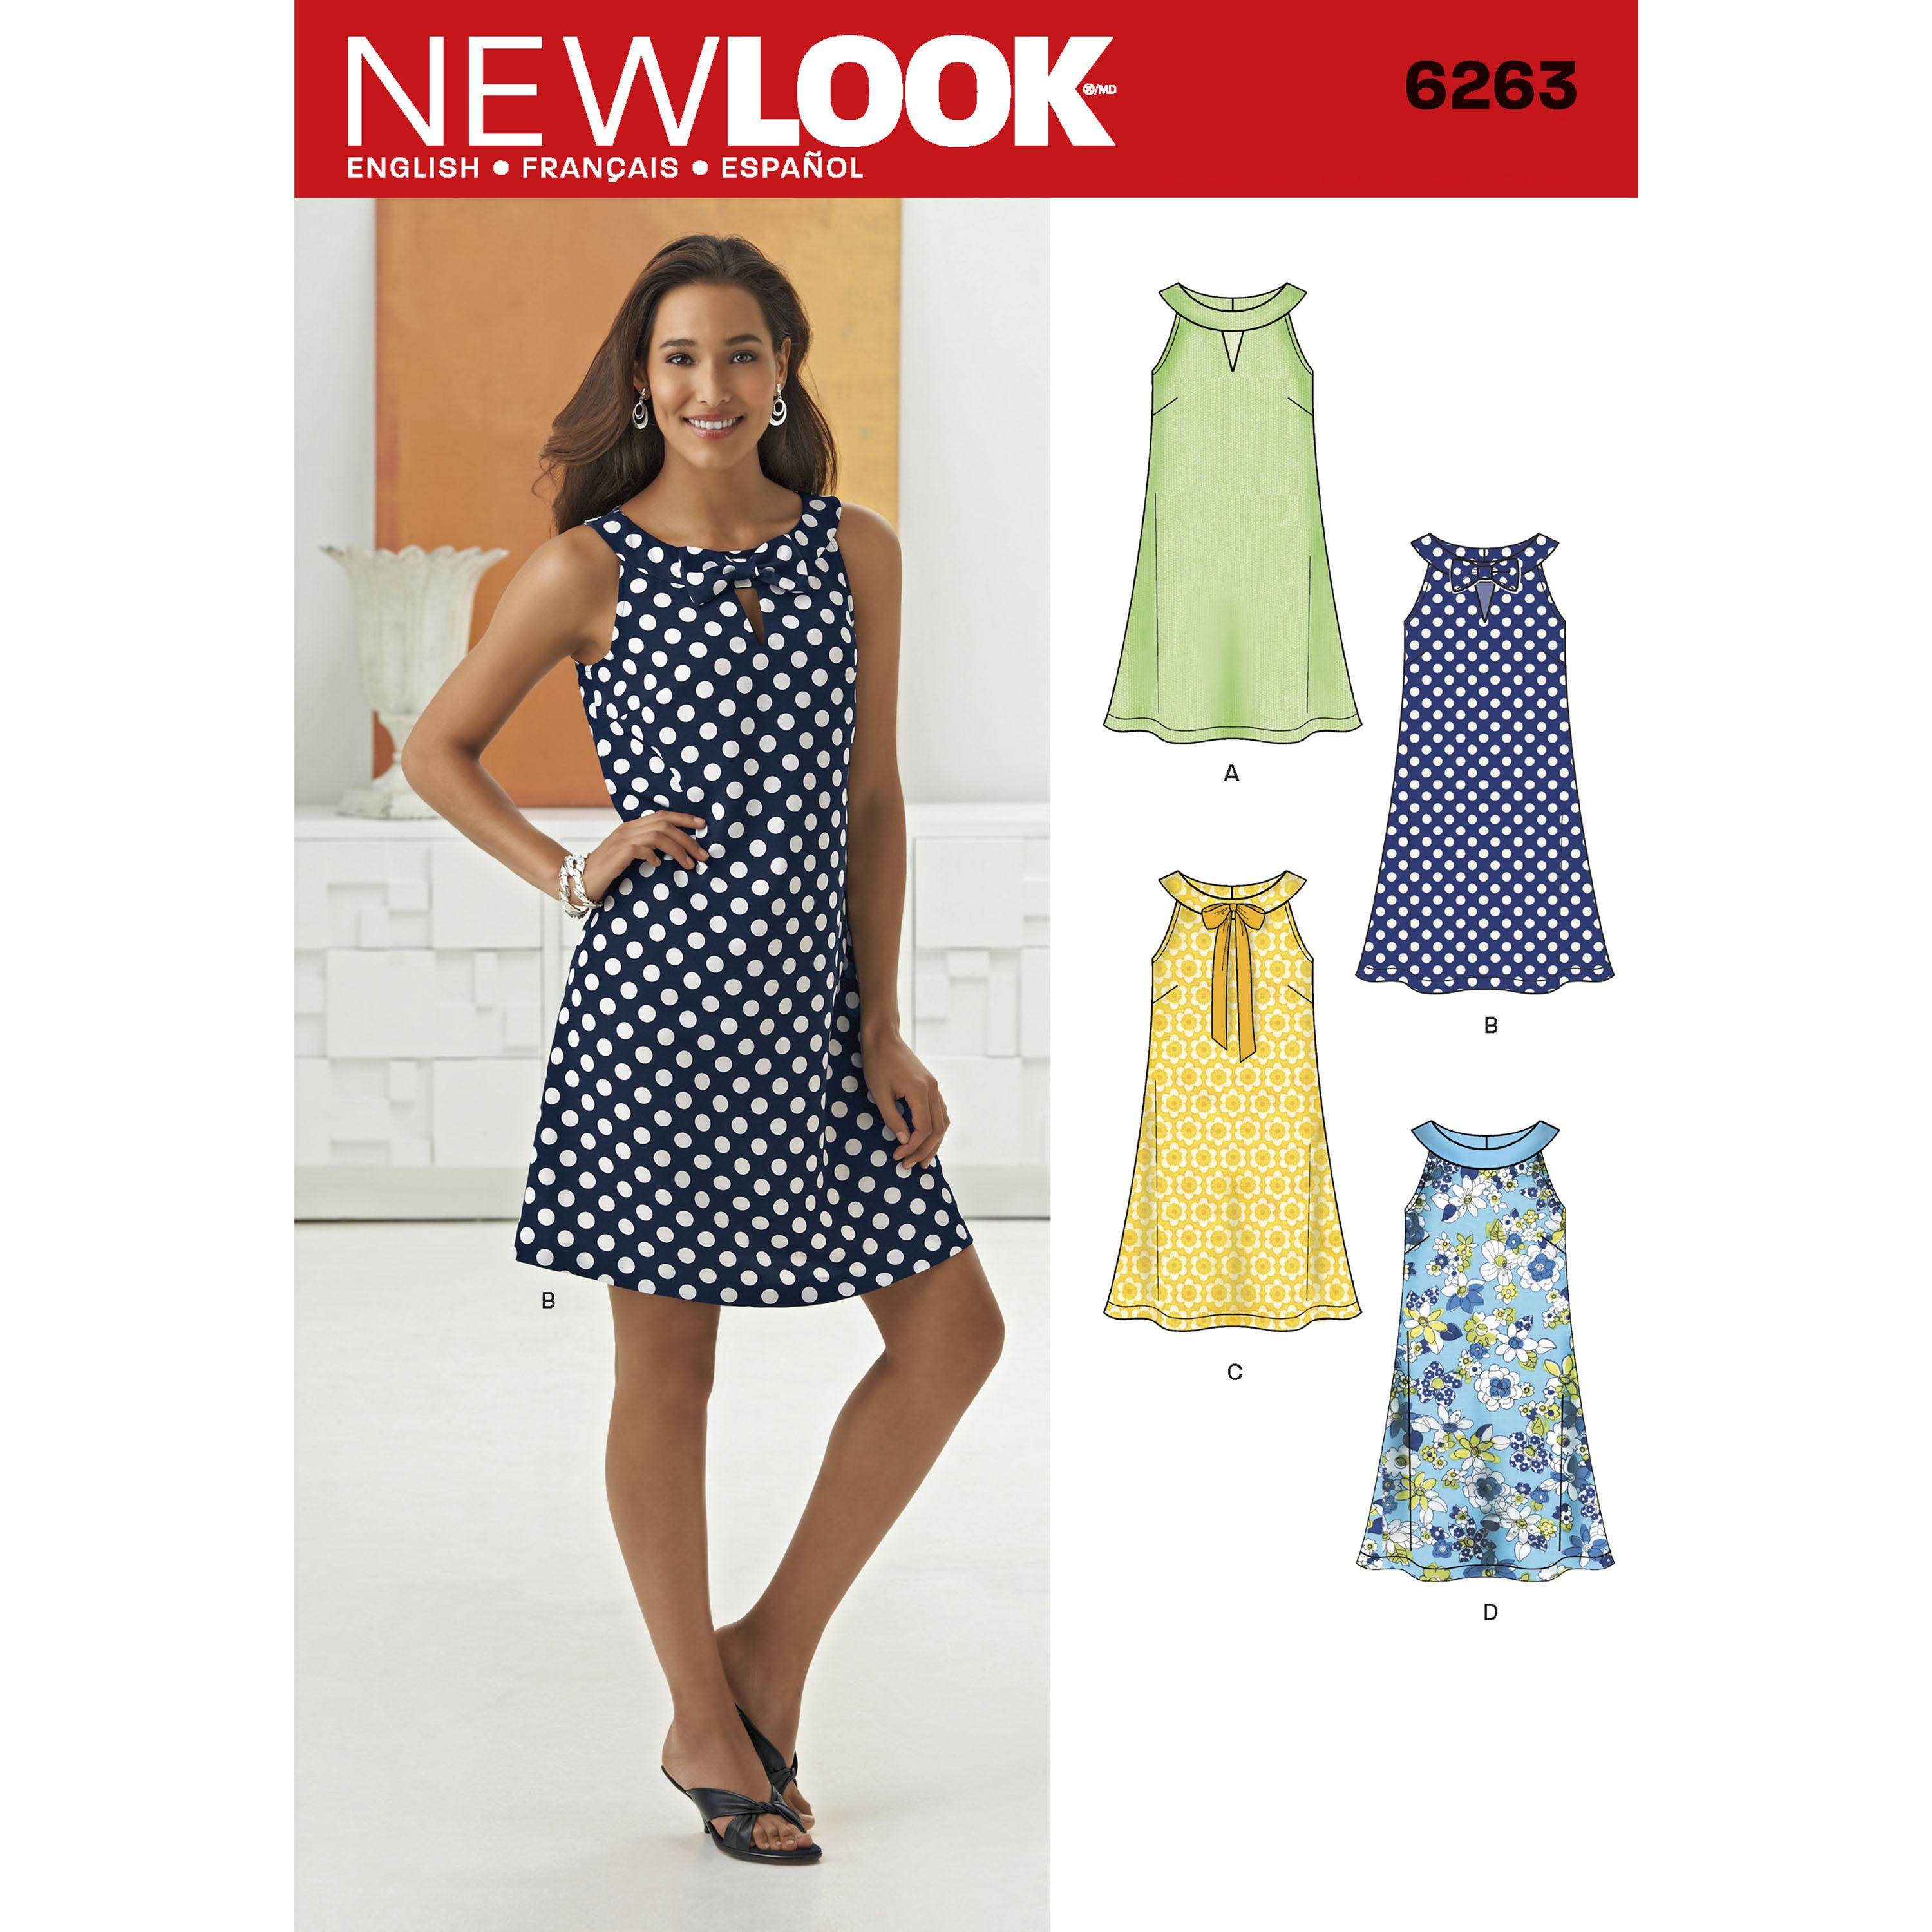 NewLook N6263 Misses' A- Line Dress